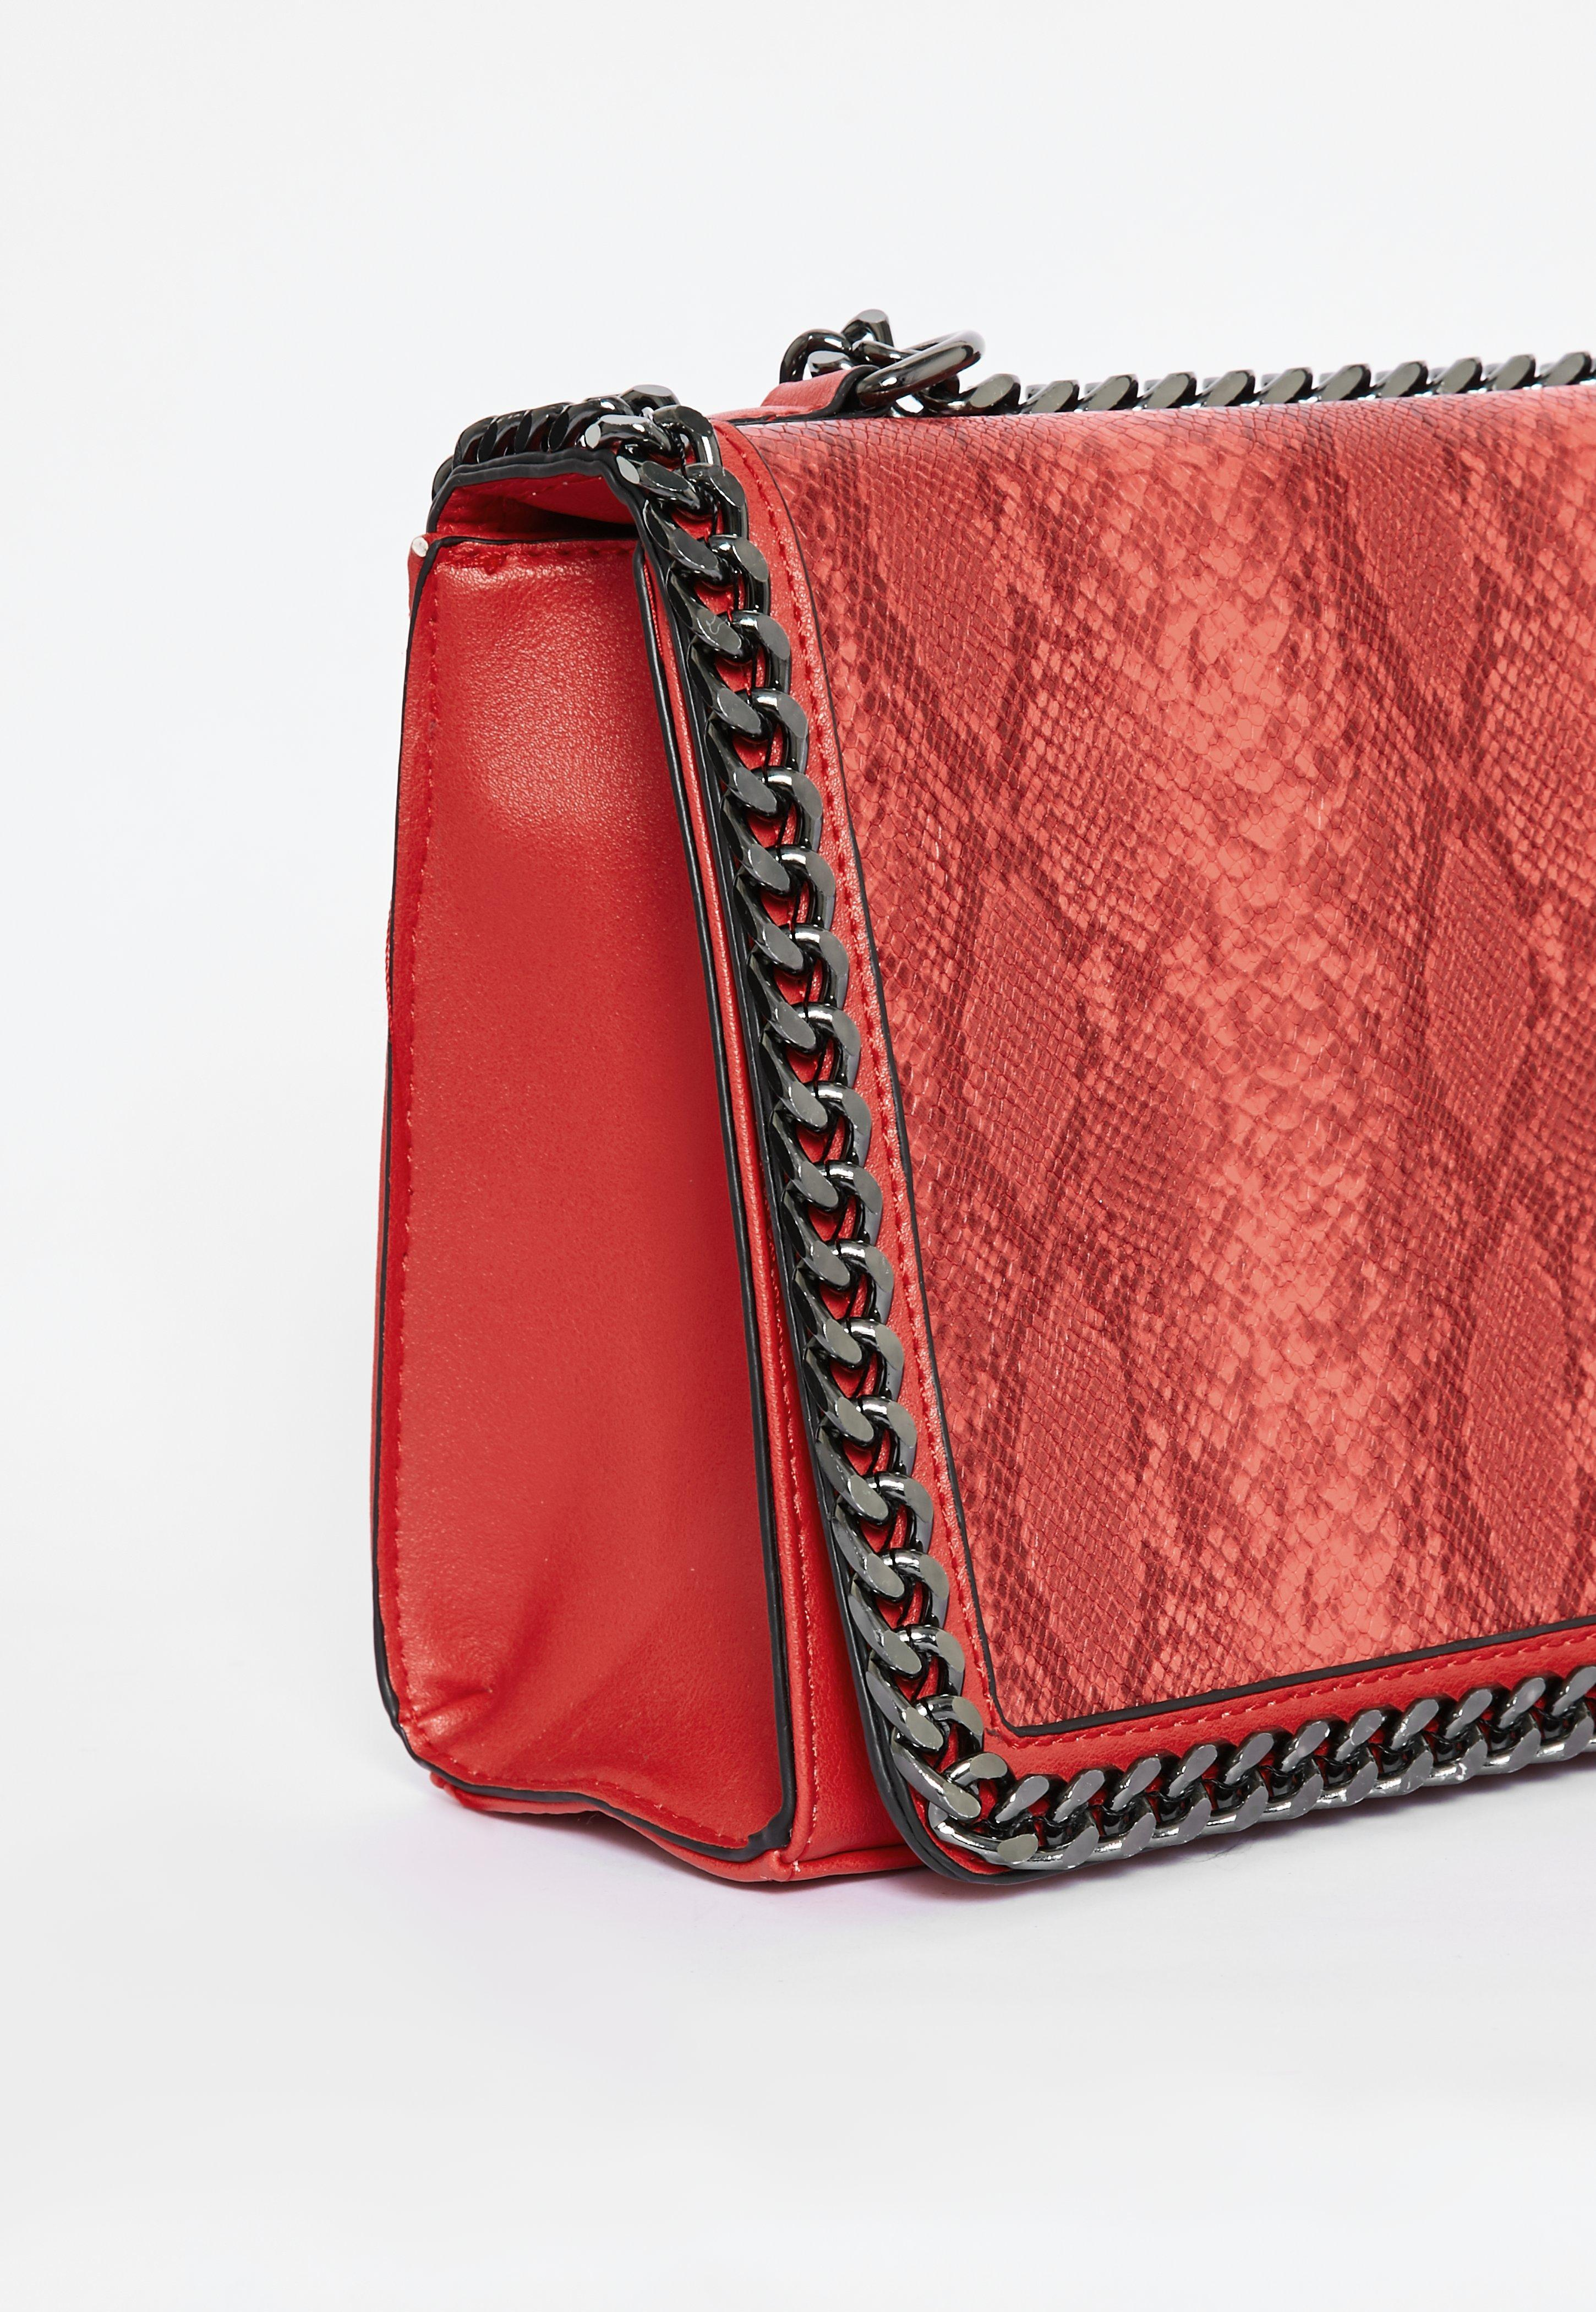 Lyst - Missguided Red Double Chain Croc Print Bag in Red 85ade8c7d24df